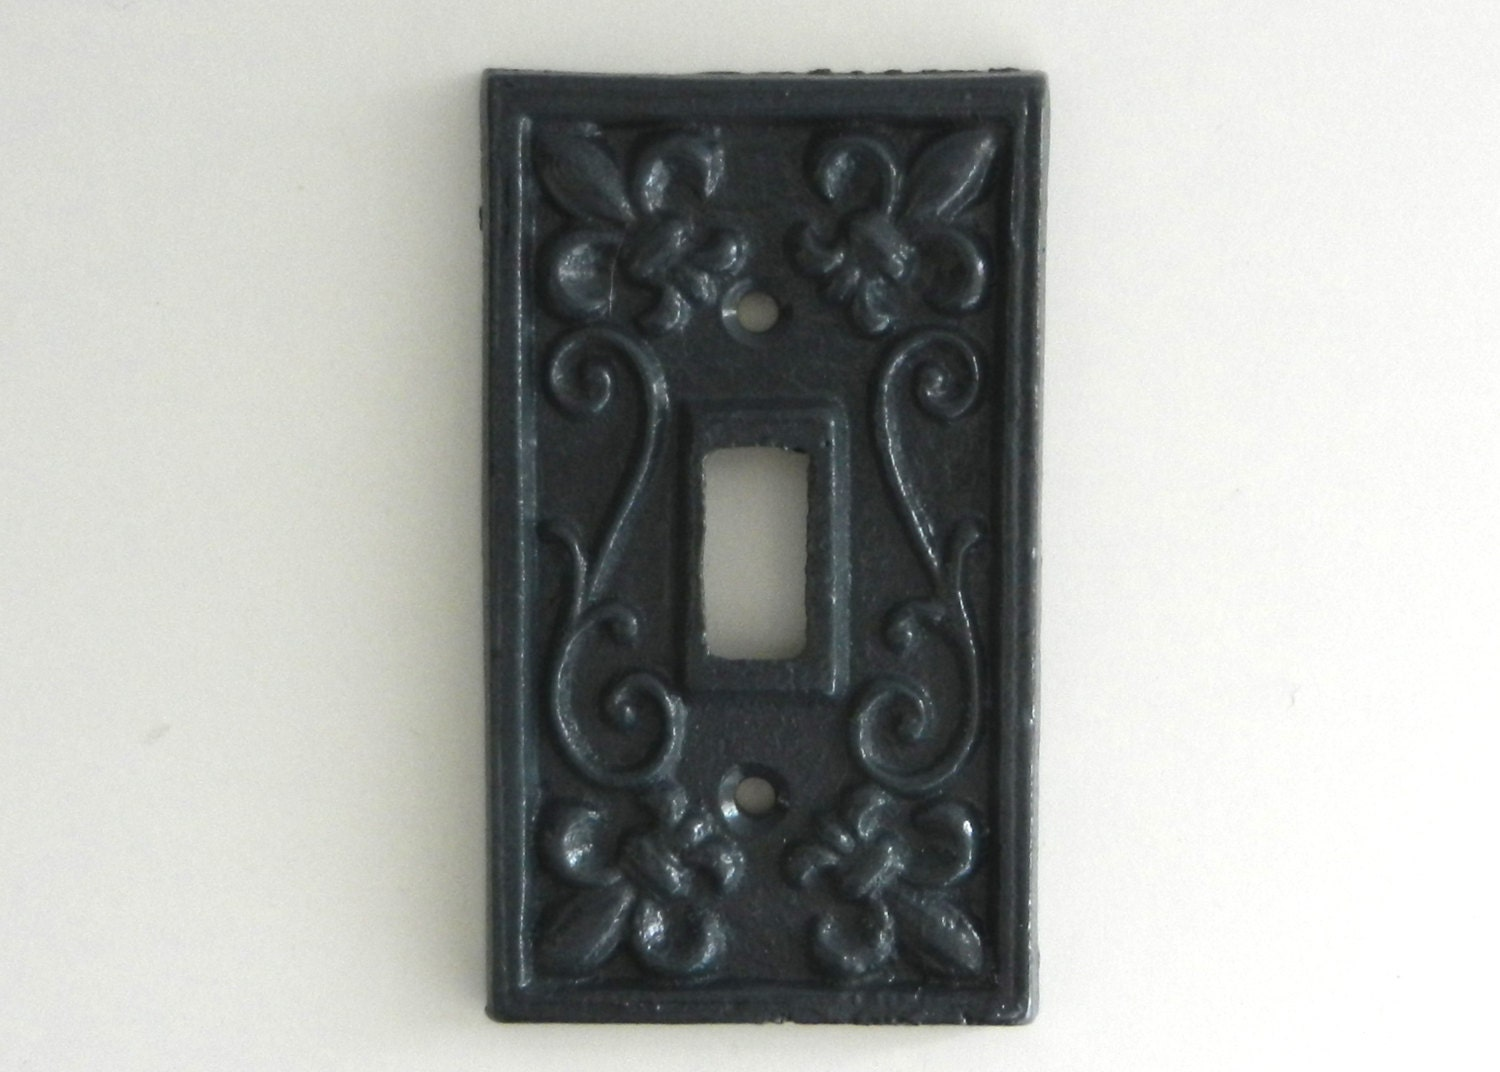 Vintage style switch cover decorative plate by juxtapositionsc - Wrought iron switch plate covers ...